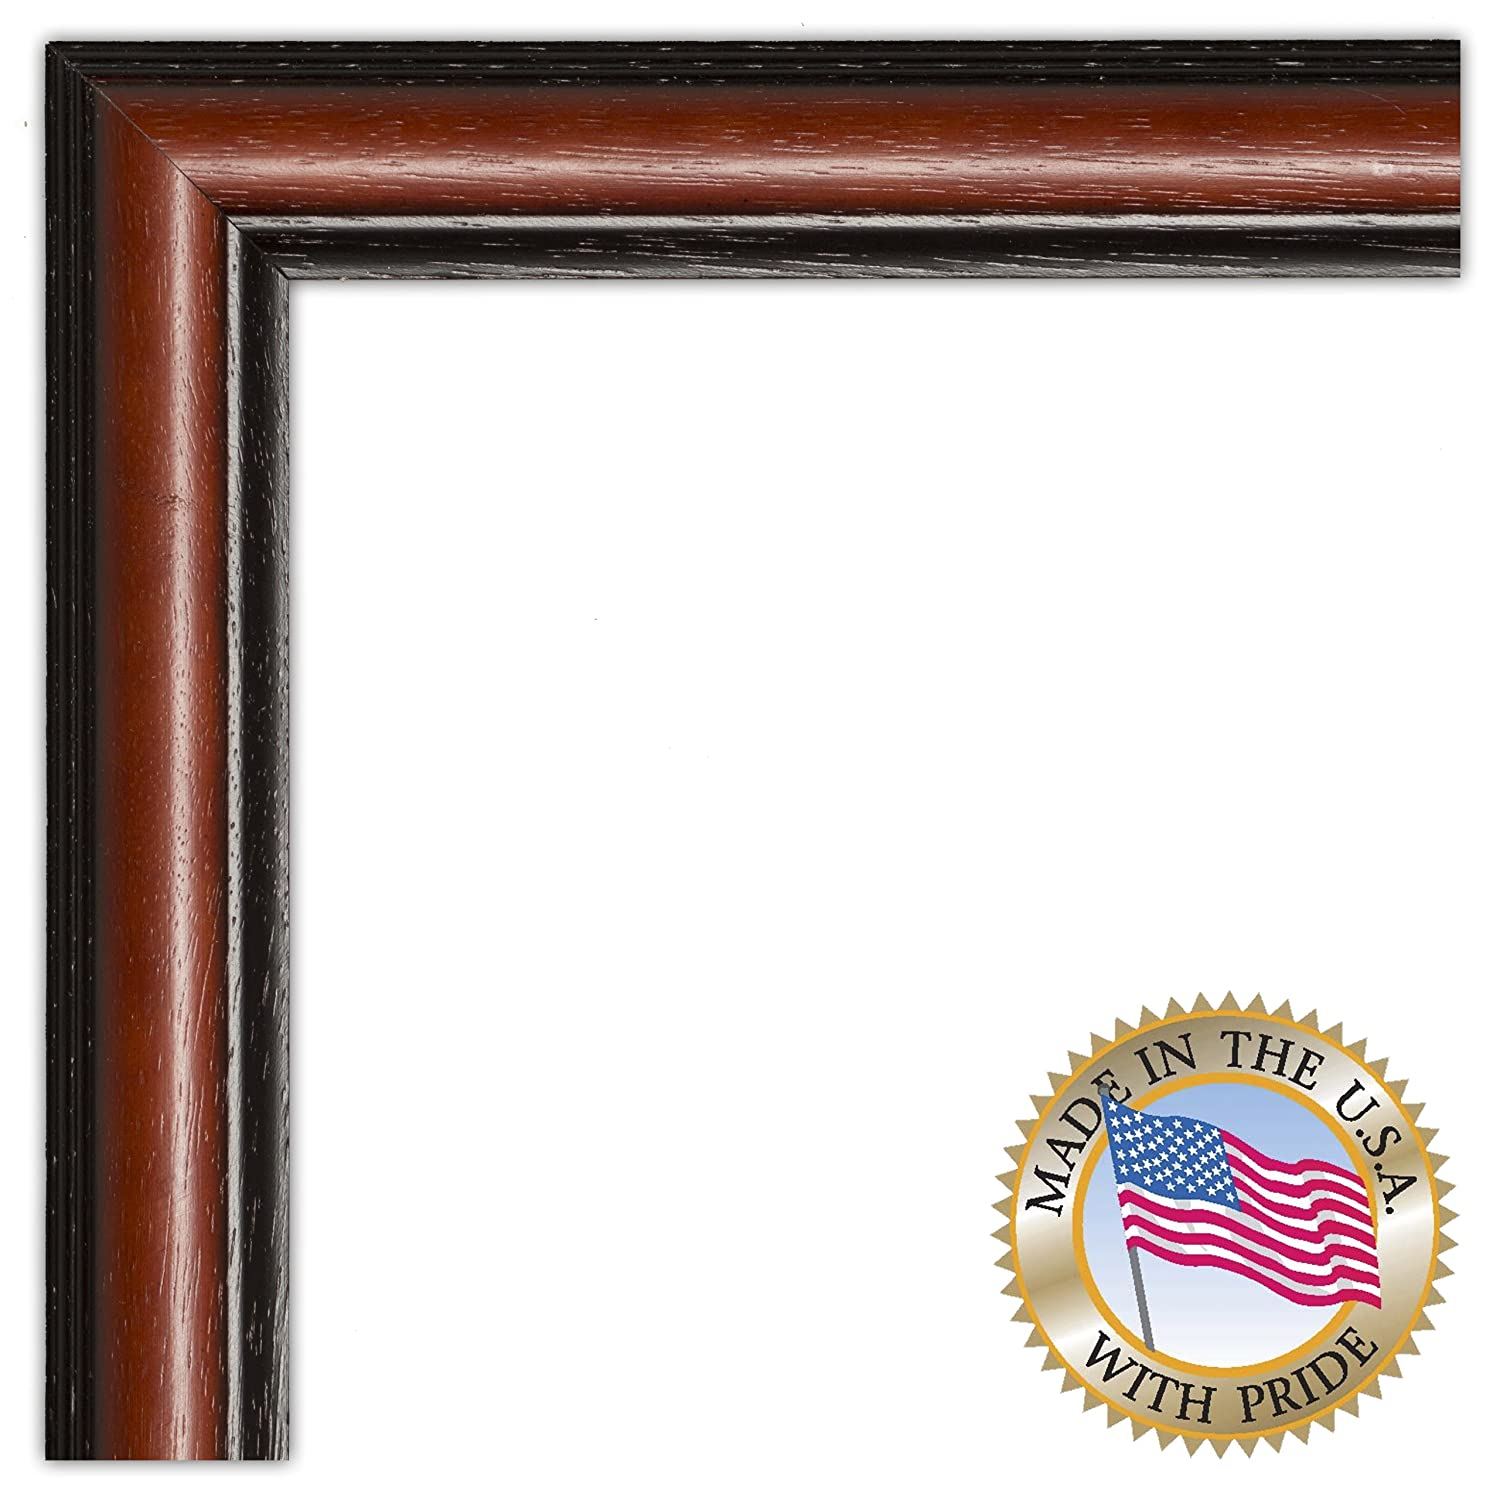 .875 wide 2WOMD8669 ArtToFrames 10x26 10  x  26 Picture Frame Traditional Cherry with Steps .